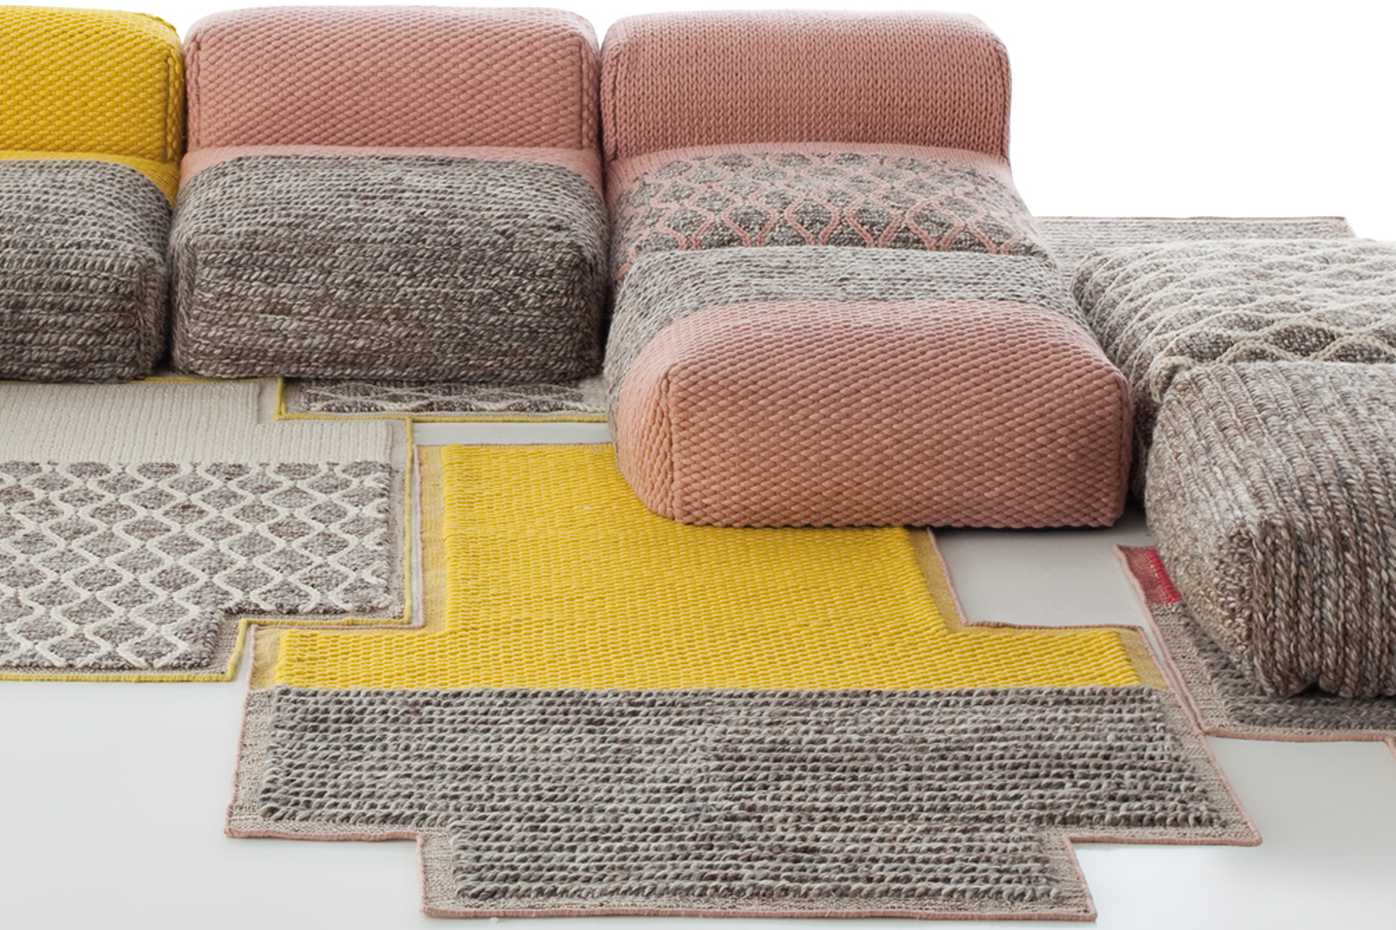 Mangas Space Rugs by Gan Rugs product image 5